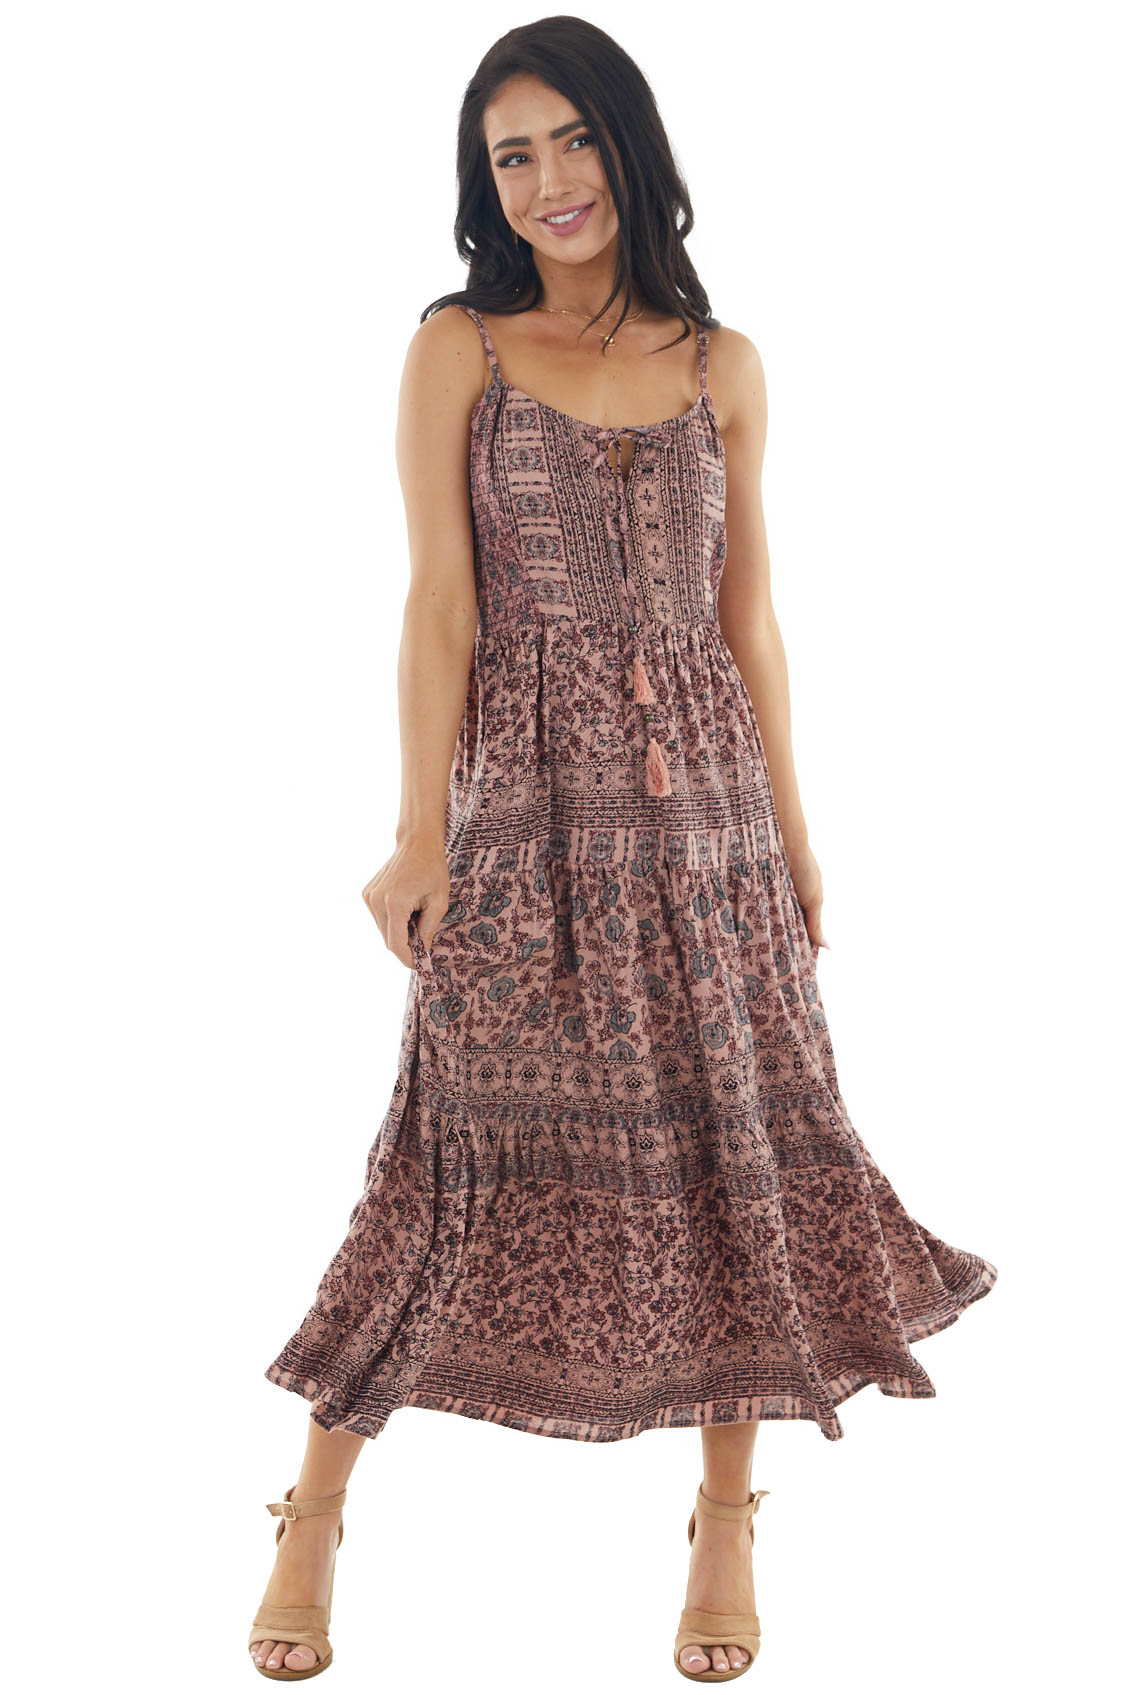 Dusty Rose Floral Print Tiered Midi Dress with Tie Details